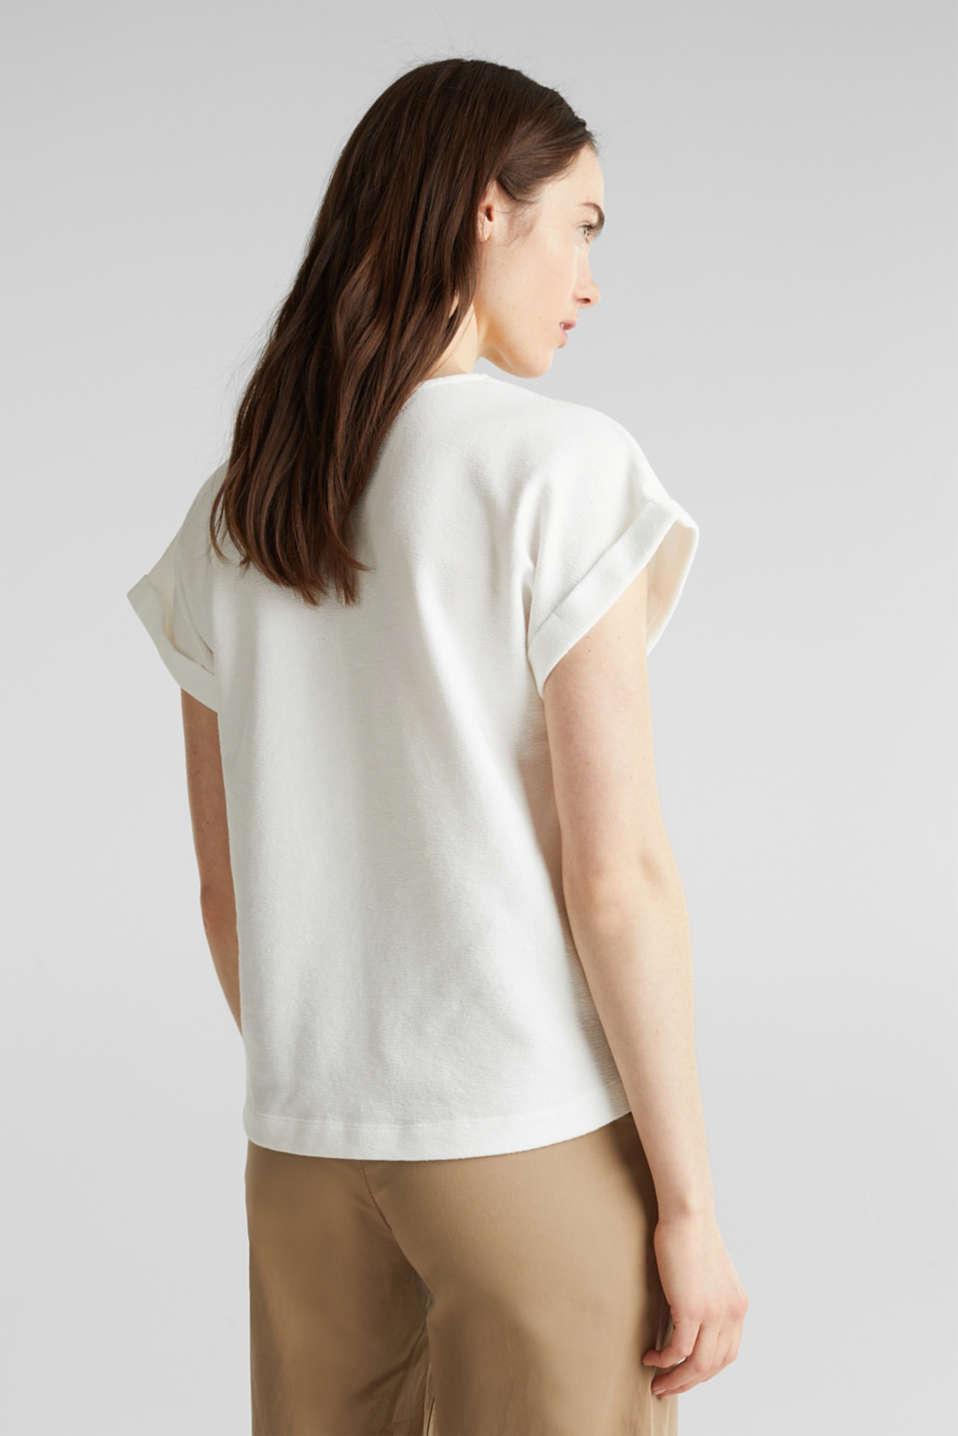 Textured T-shirt with button placket, 100% cotton, OFF WHITE, detail image number 3